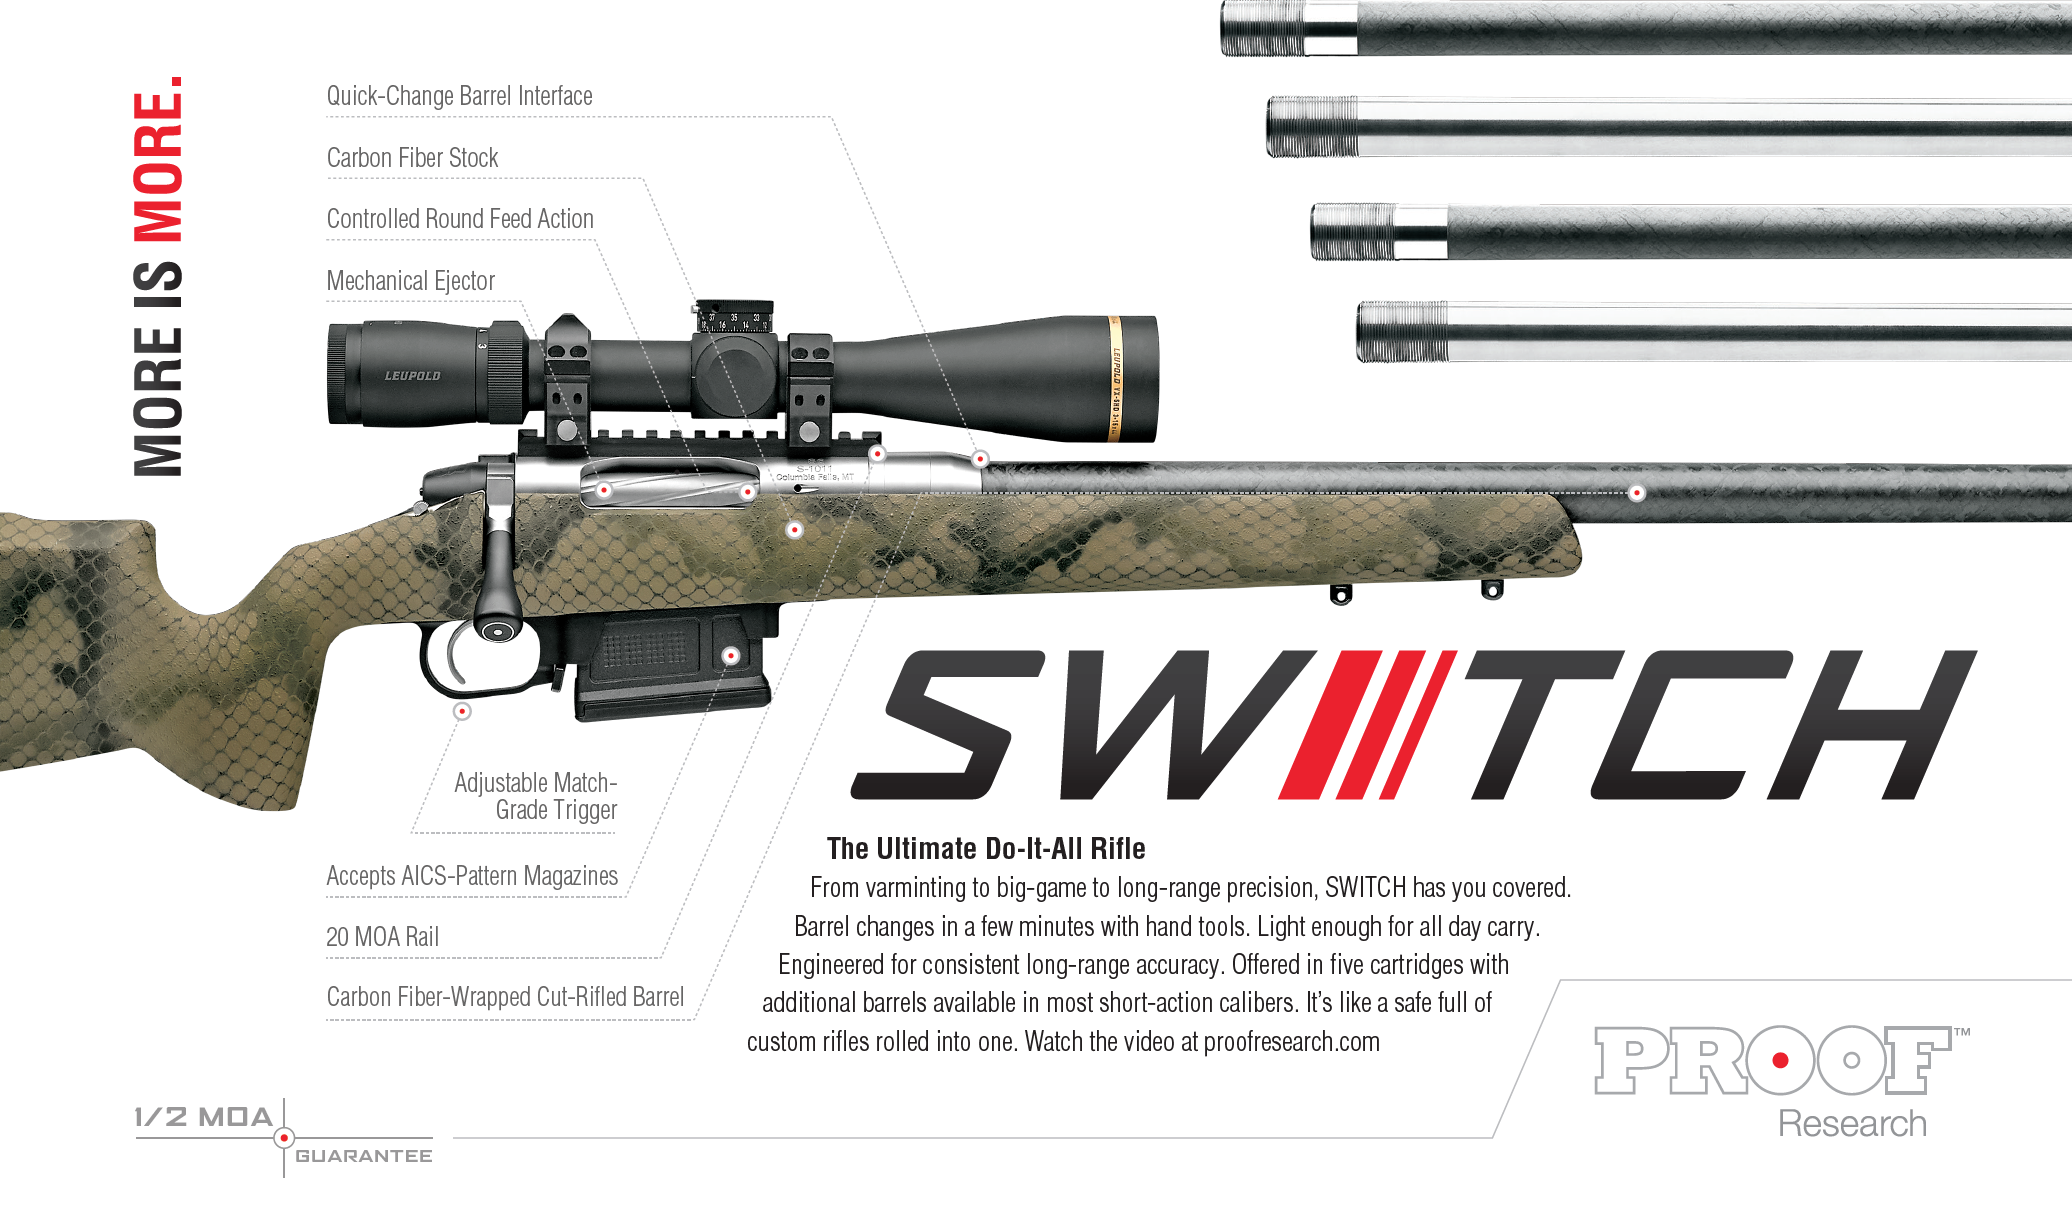 PROOF Research's Switch™ Rifle is a Do-Anything, Go-Anywhere Long-Range Package